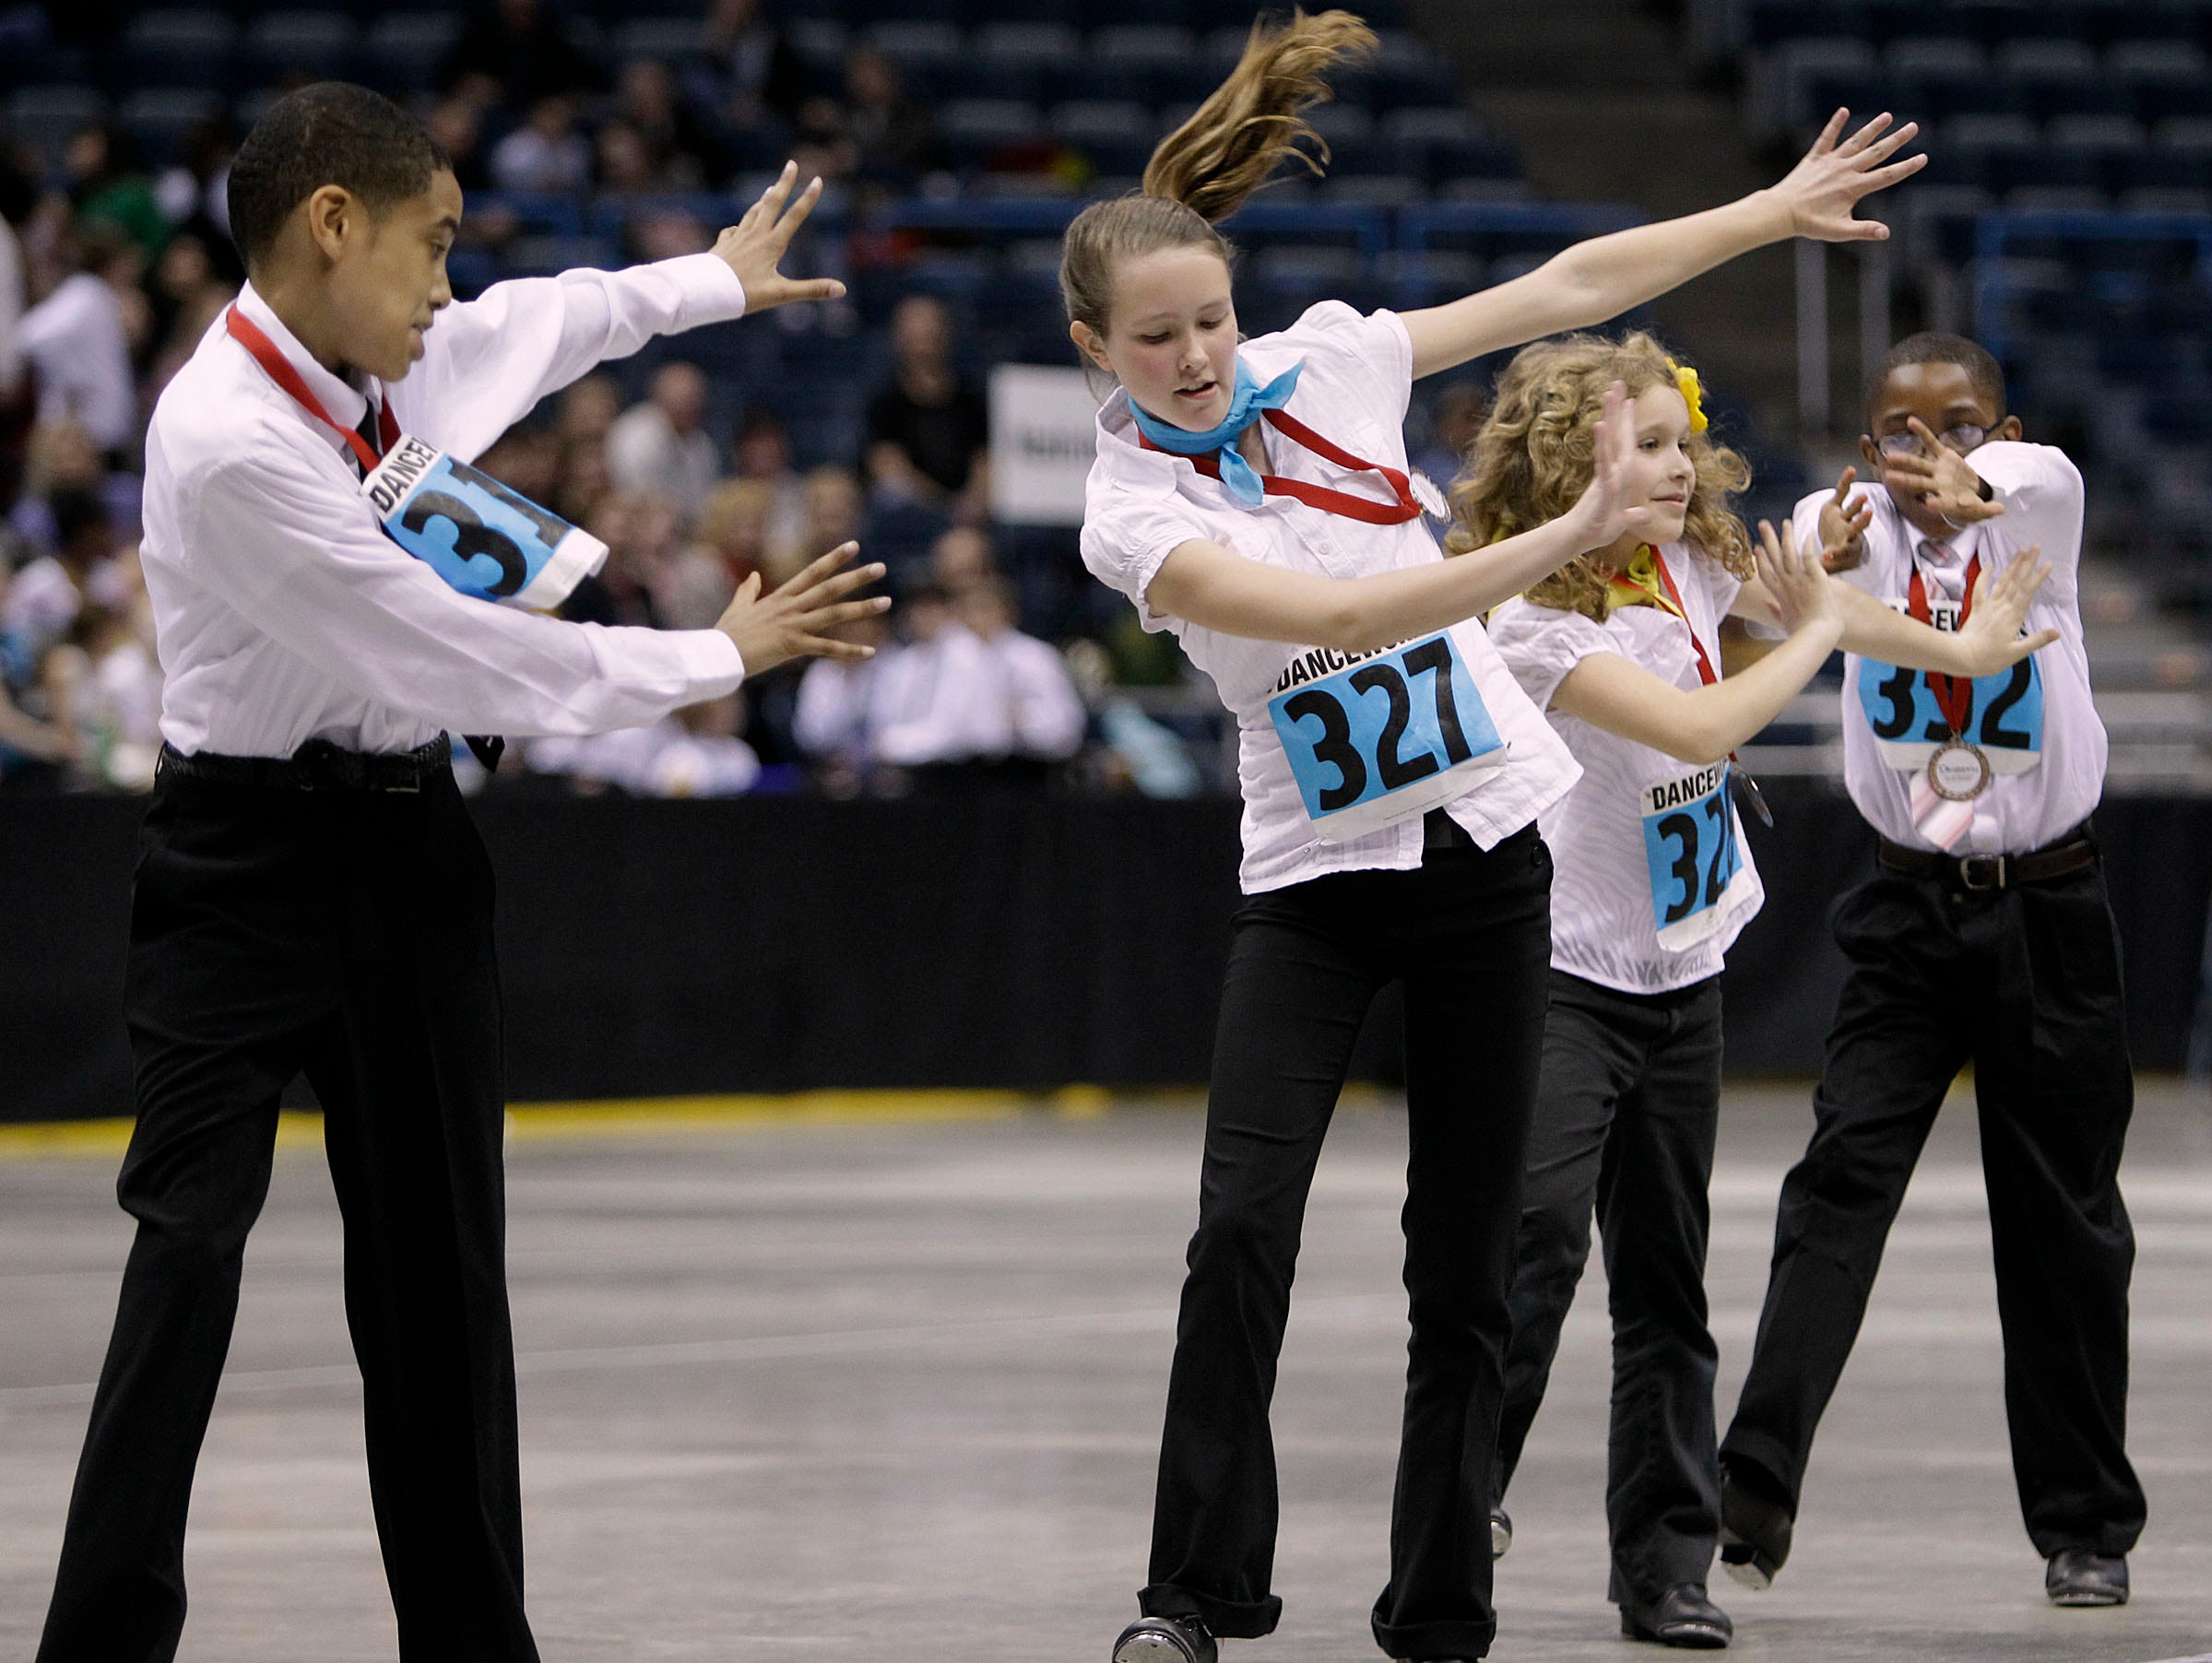 2011: Jordan Bell (left), from Clement Ave. School, and Nikole Weston (2nd from left), from Elm-Dale School,  perform and compete with other students from 39 area schools in the annual Mad Hot Ballroom show at the Bradley Center.